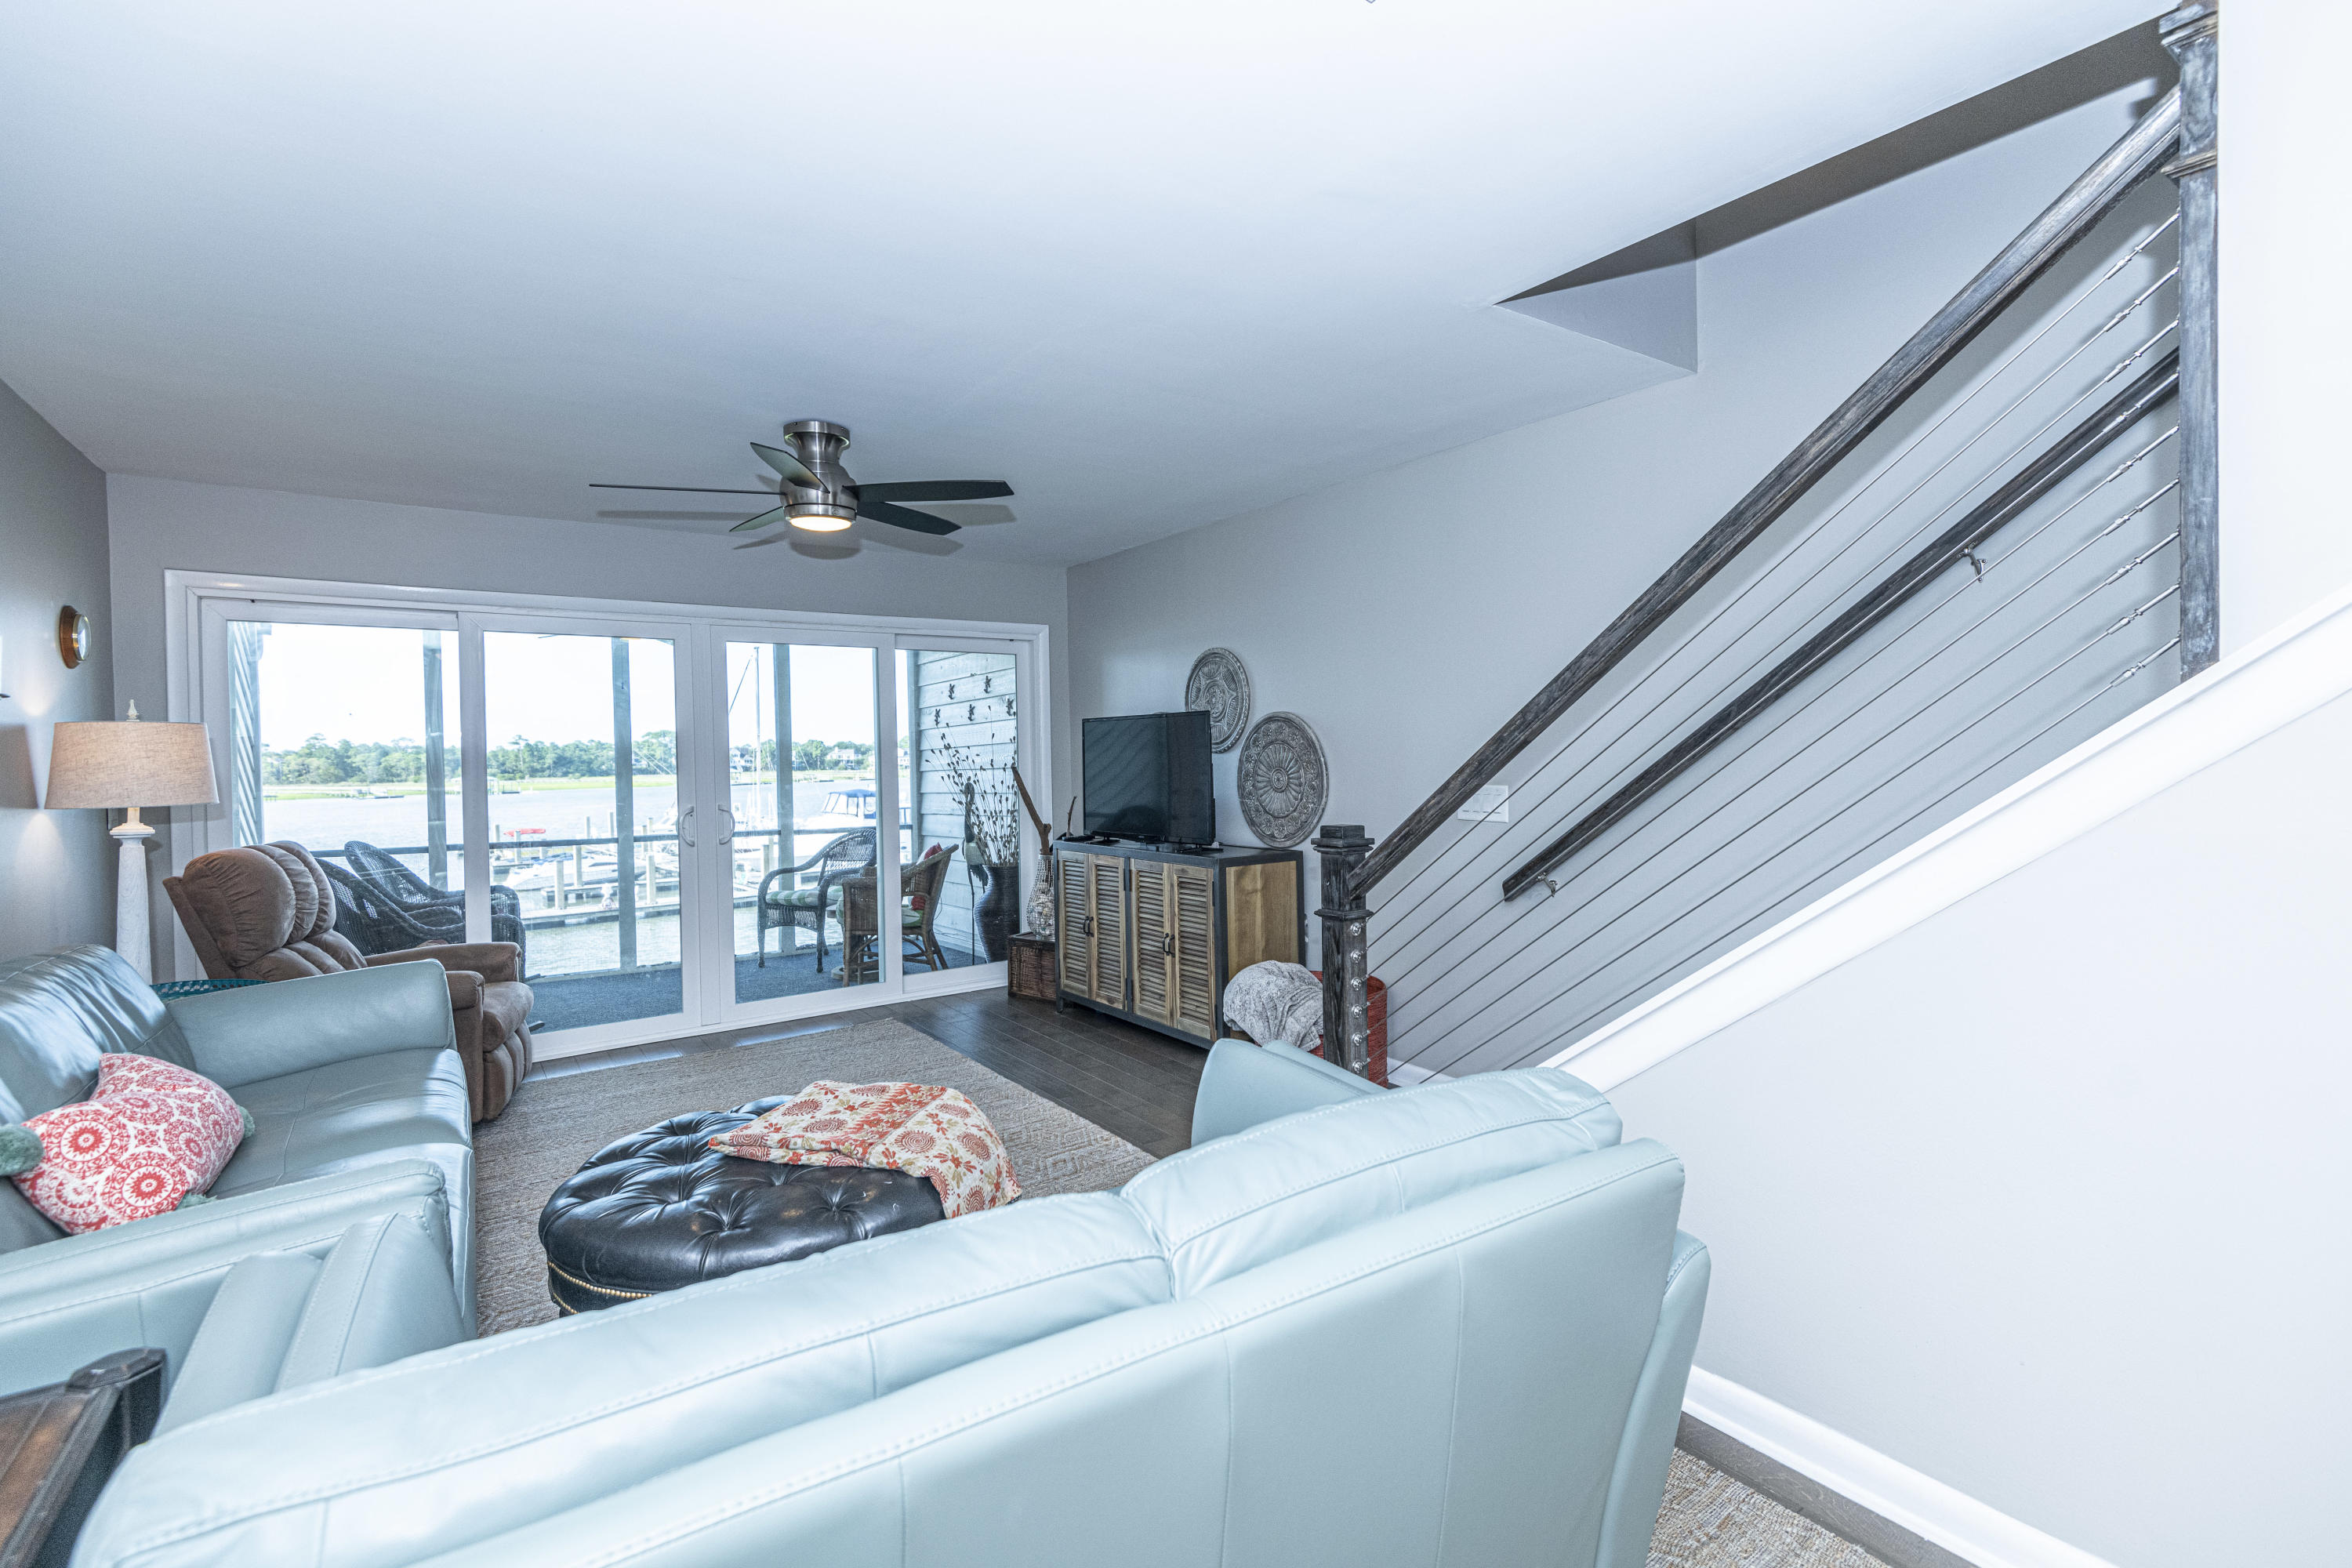 Mariners Cay Homes For Sale - 71 Mariners Cay, Folly Beach, SC - 2